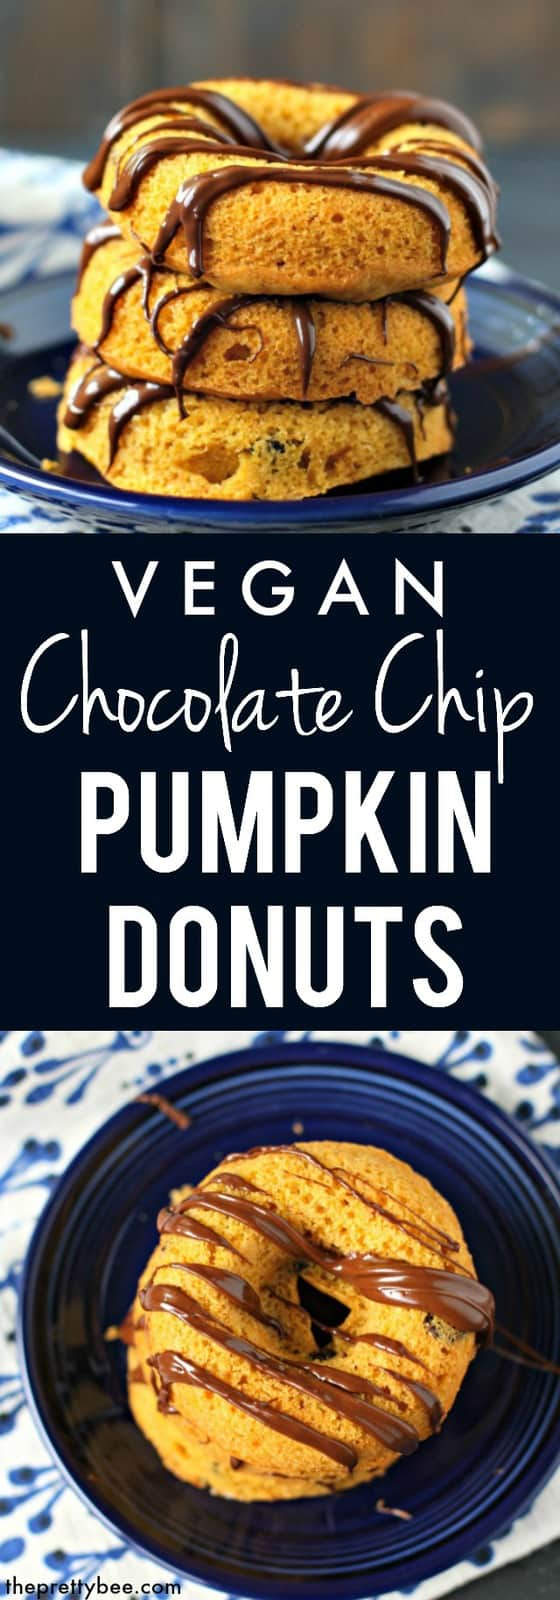 Deliciously spiced baked pumpkin donuts are topped with chocolate drizzle for a sweet treat that's perfect for fall! #pumpkin #vegan #dairyfree #nutfree #donuts